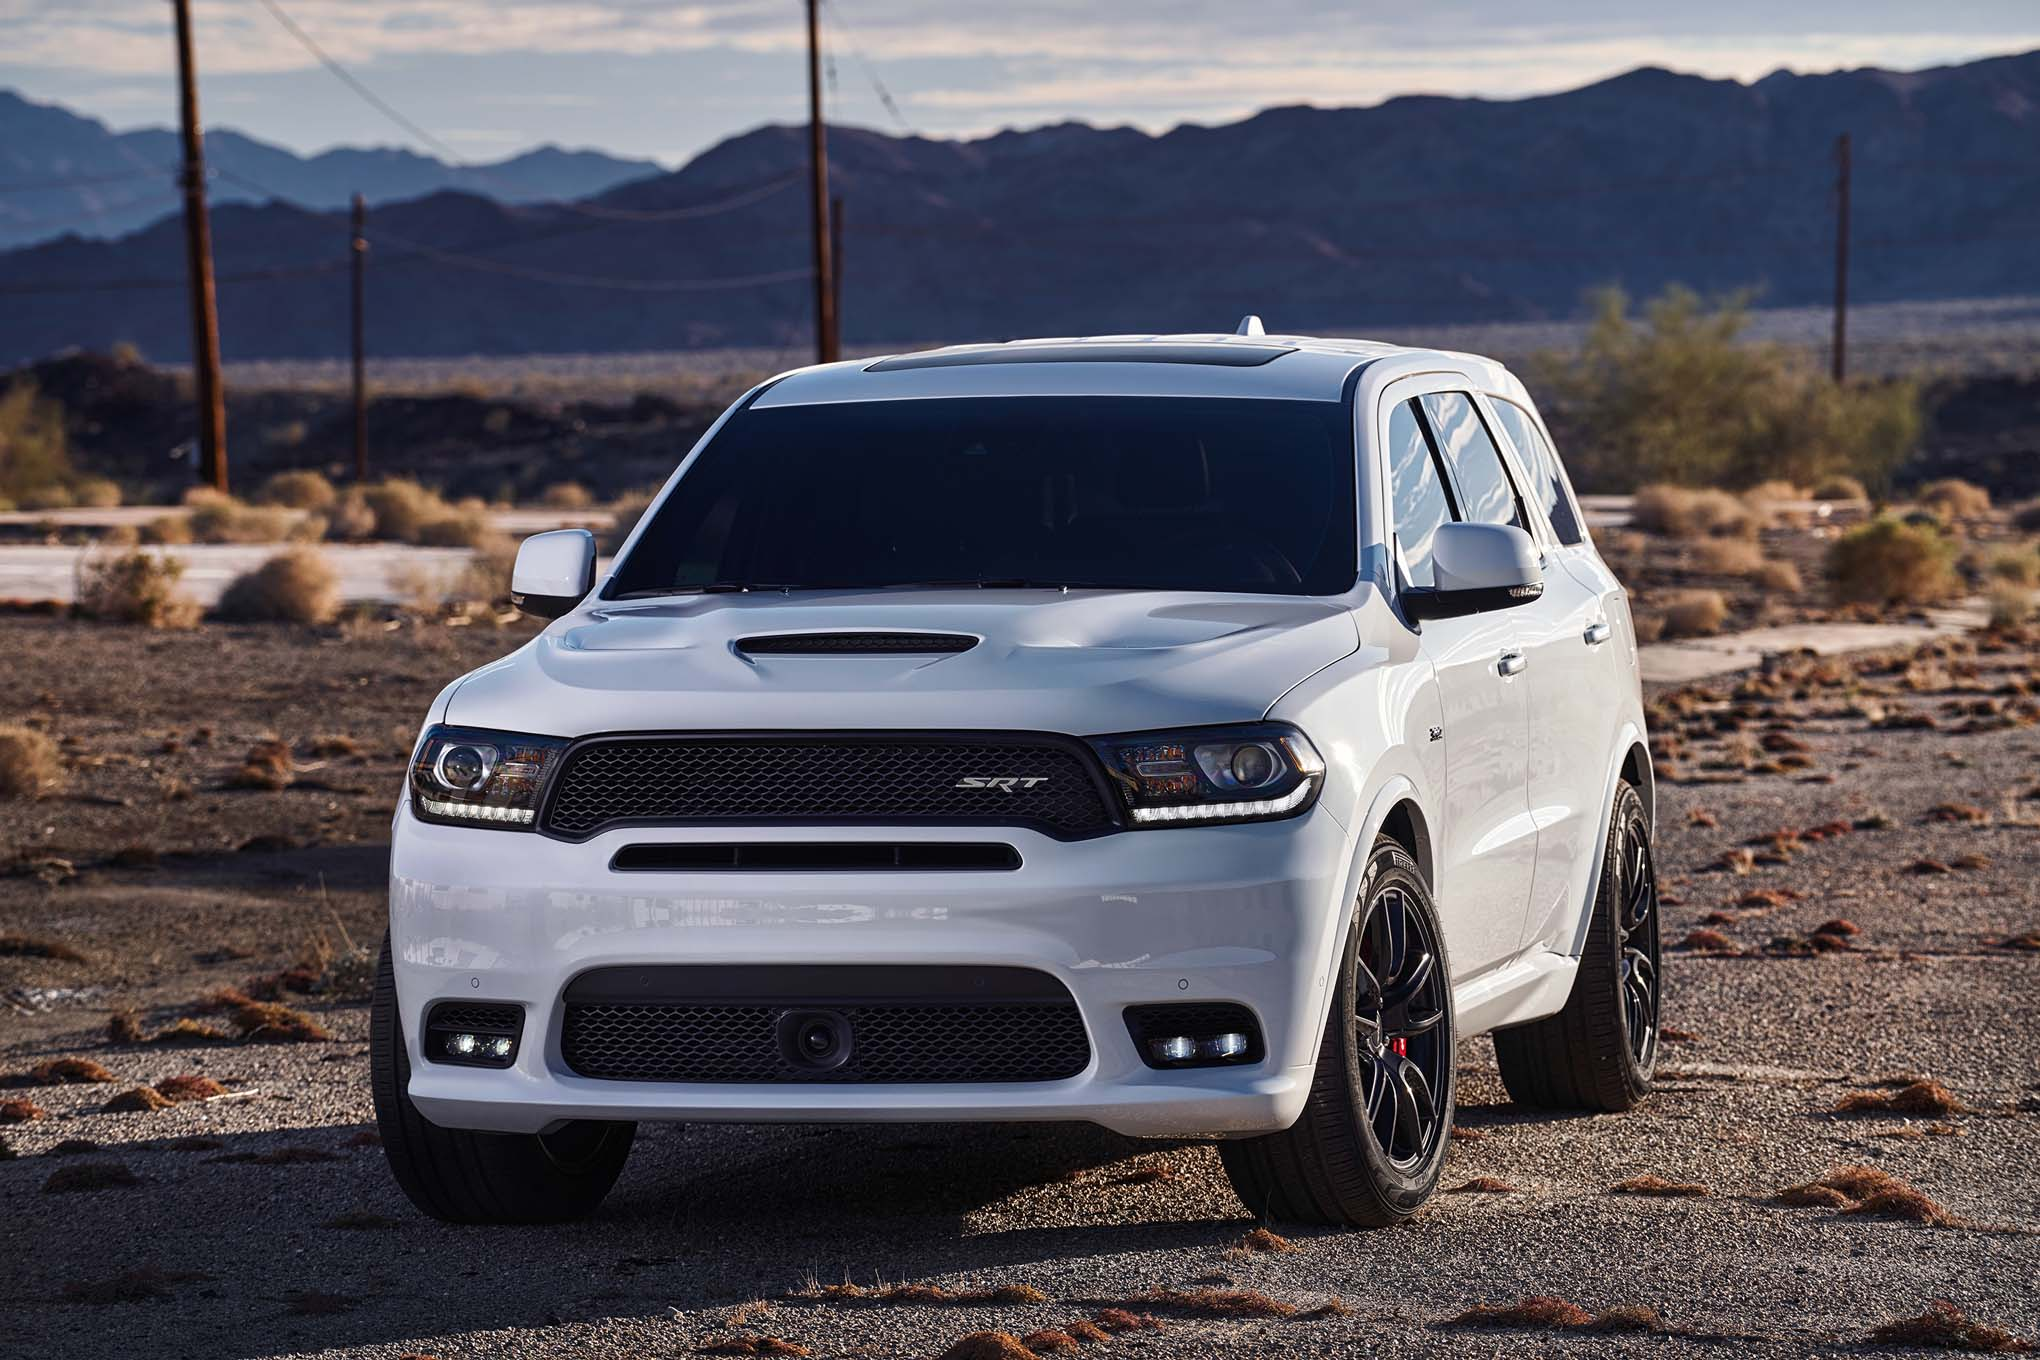 Ram Srt 10 >> 2018 Dodge Durango SRT First Look | Automobile Magazine